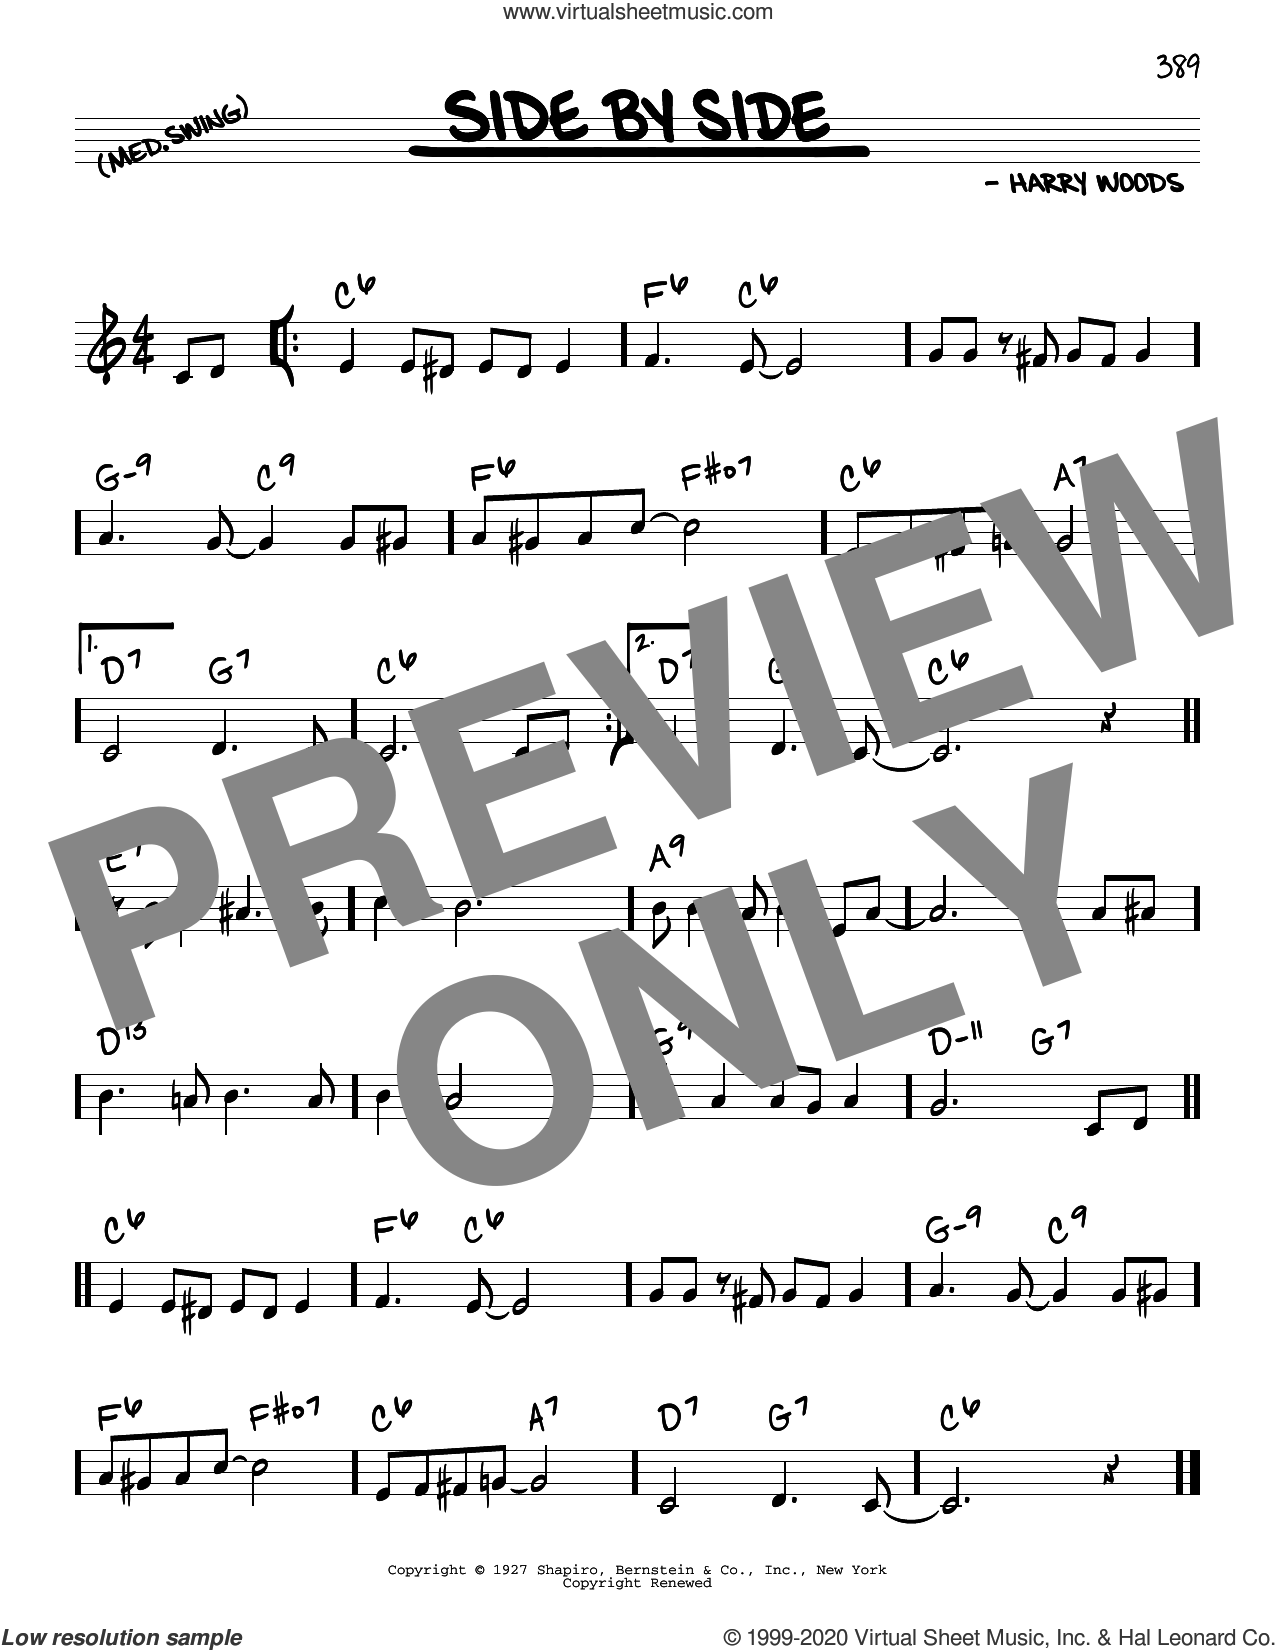 Side By Side sheet music for voice and other instruments (real book) by Patsy Cline and Harry Woods, intermediate skill level